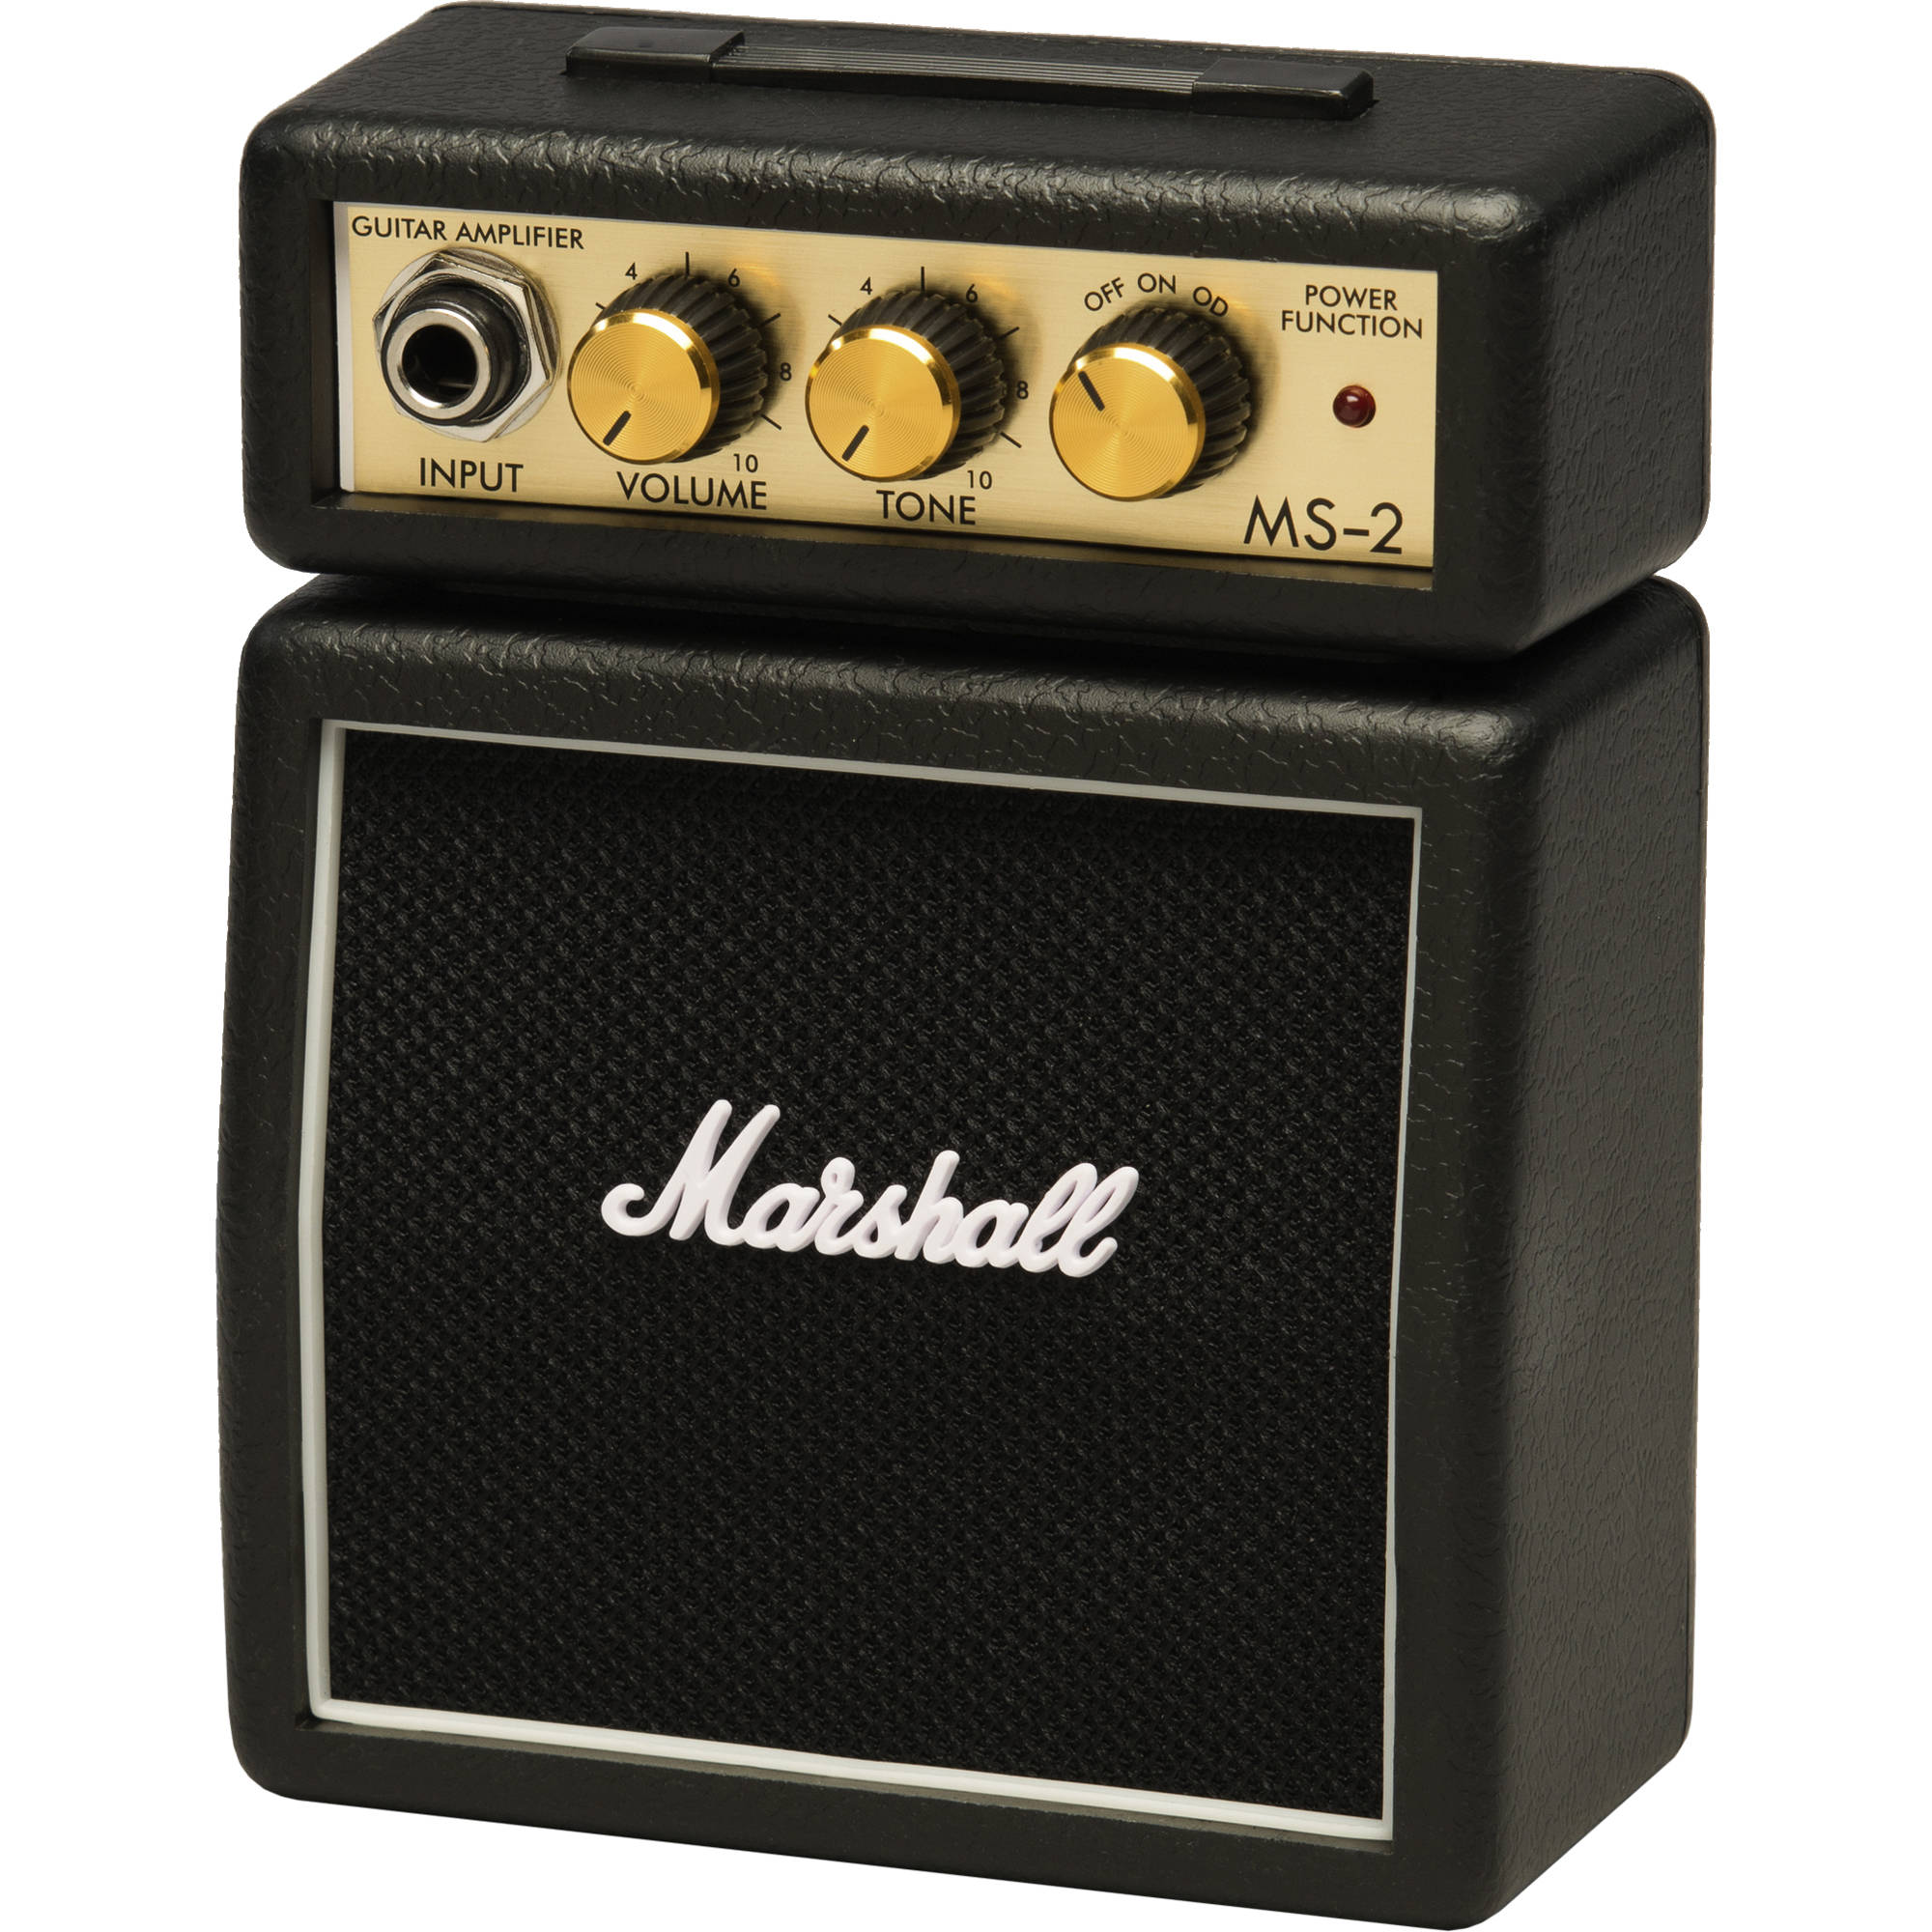 Marshall Amplification Ms 2 Micro Amp Mini Practice Apmilifier Guitar Bass Amplifier Circuit And Explanation Black